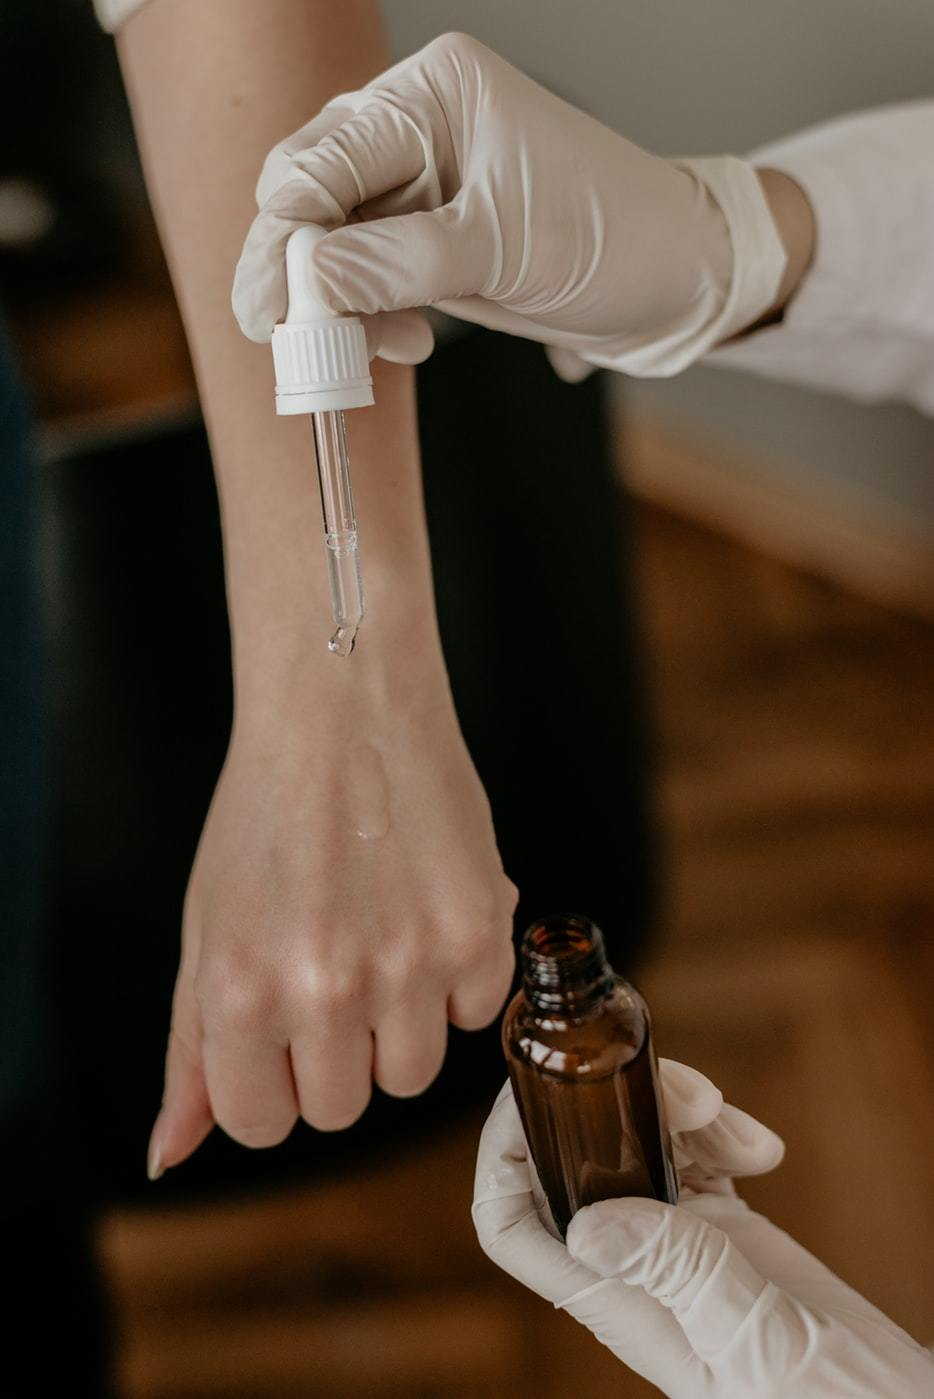 picture of a woman applying essential oils and cosmetics to another woman's hand